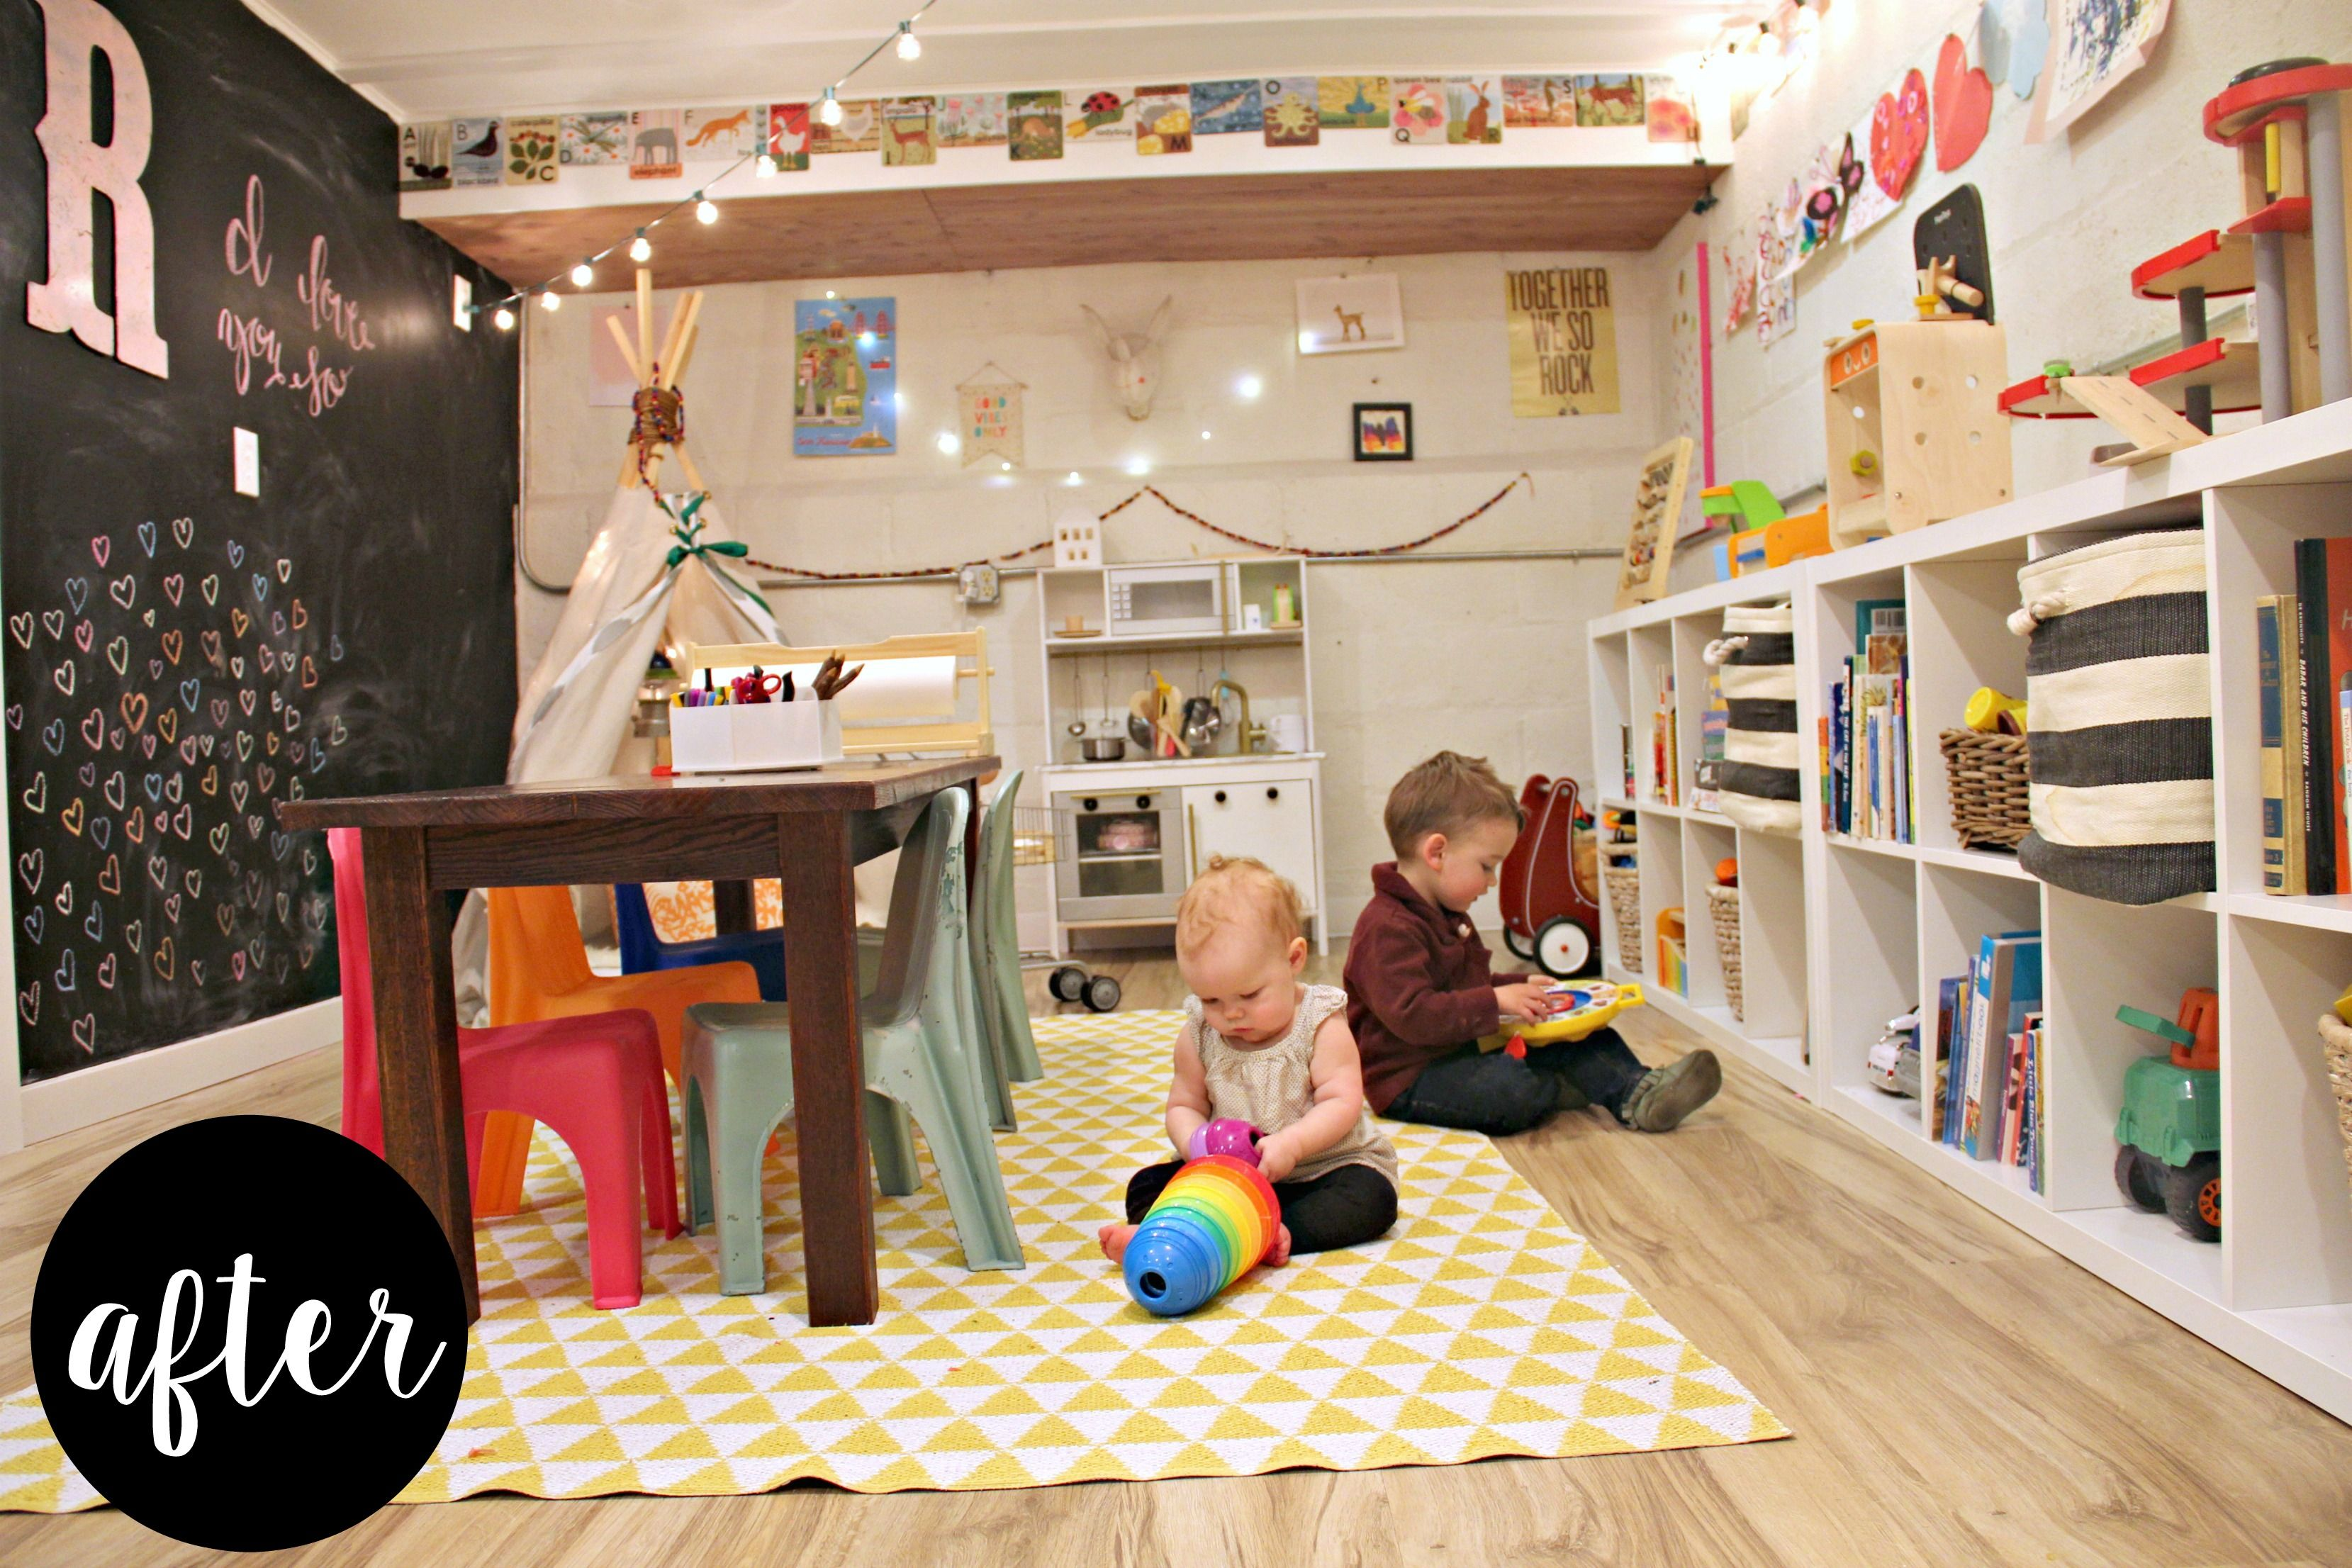 Playrooms For Toddlers A Whimsical Basement Playroom  Colorful Playroom Outdoor Cafe